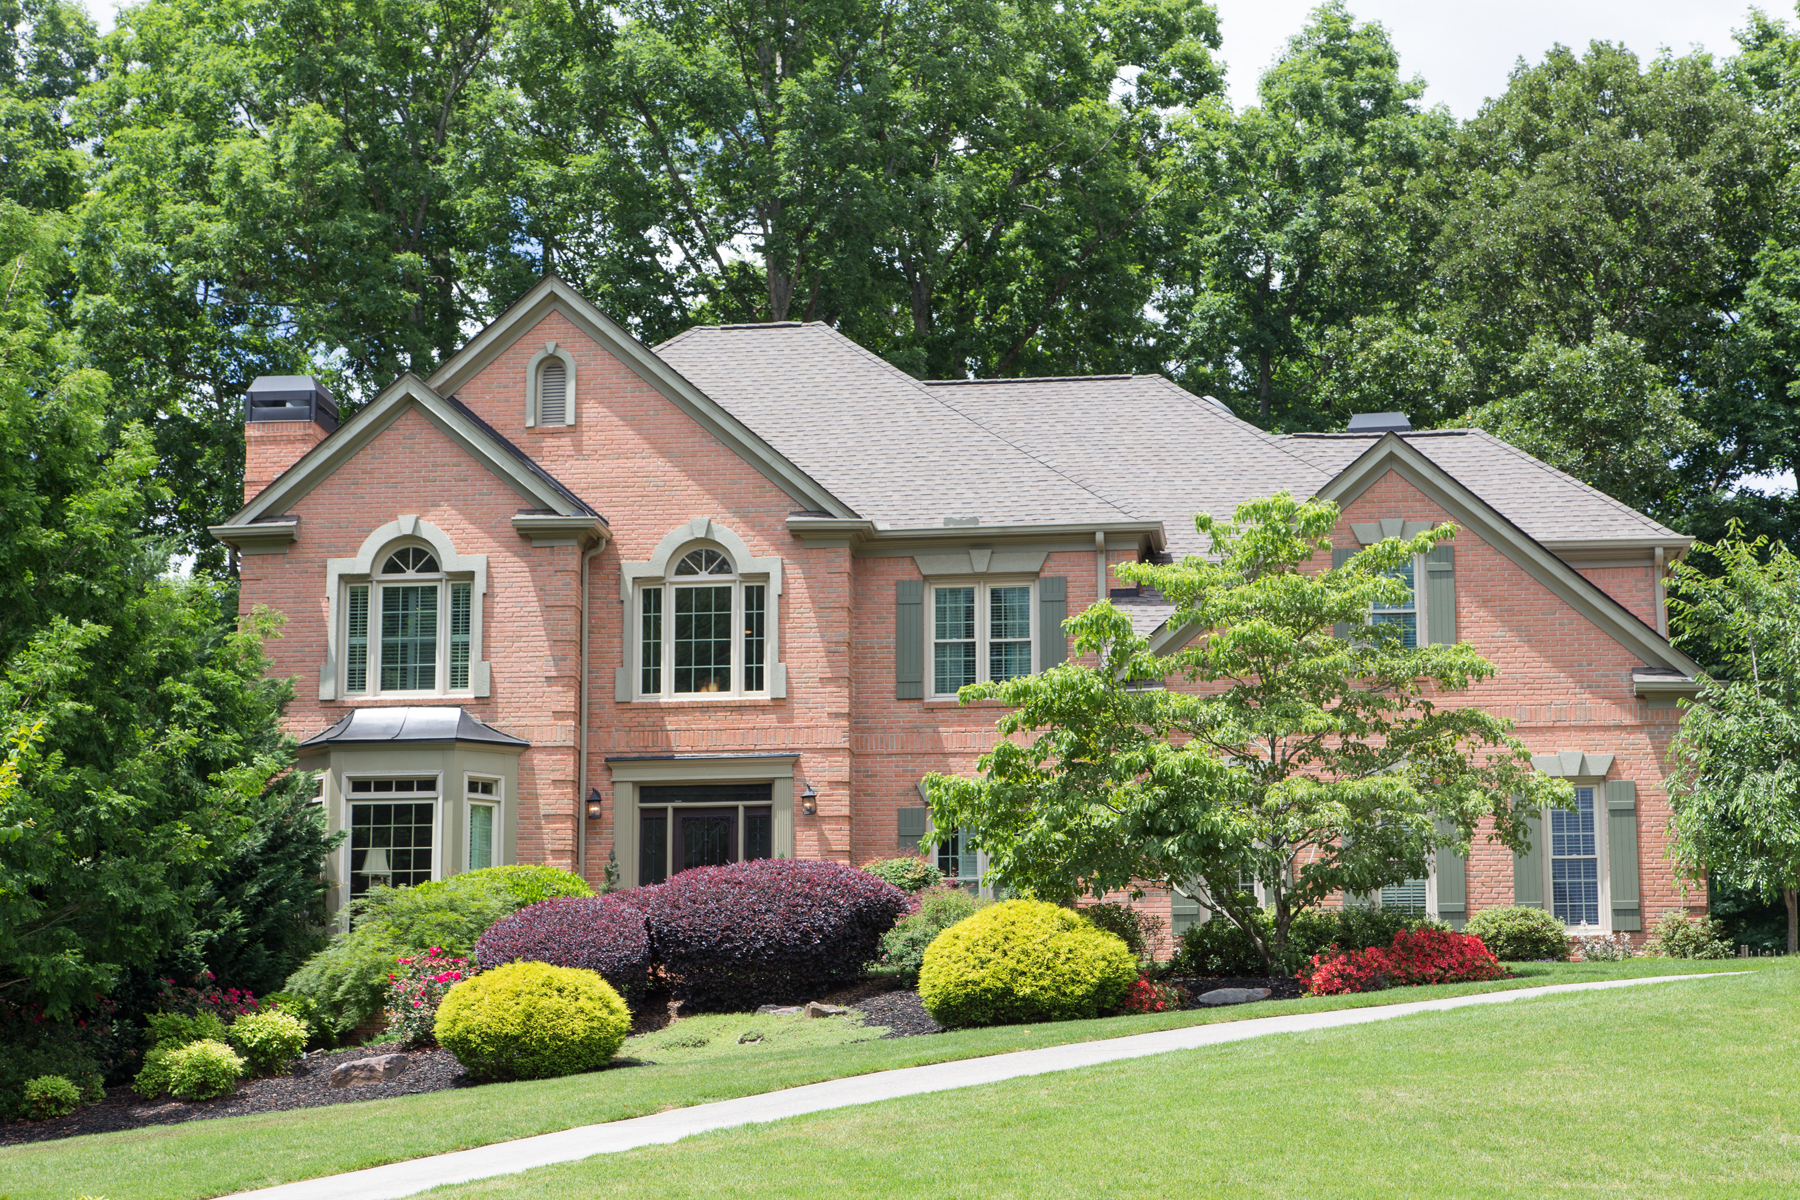 Single Family Home for Sale at Private Oasis In Roswell's Most Desirable Country Club 800 Millsbee Dr Roswell, Georgia 30075 United States